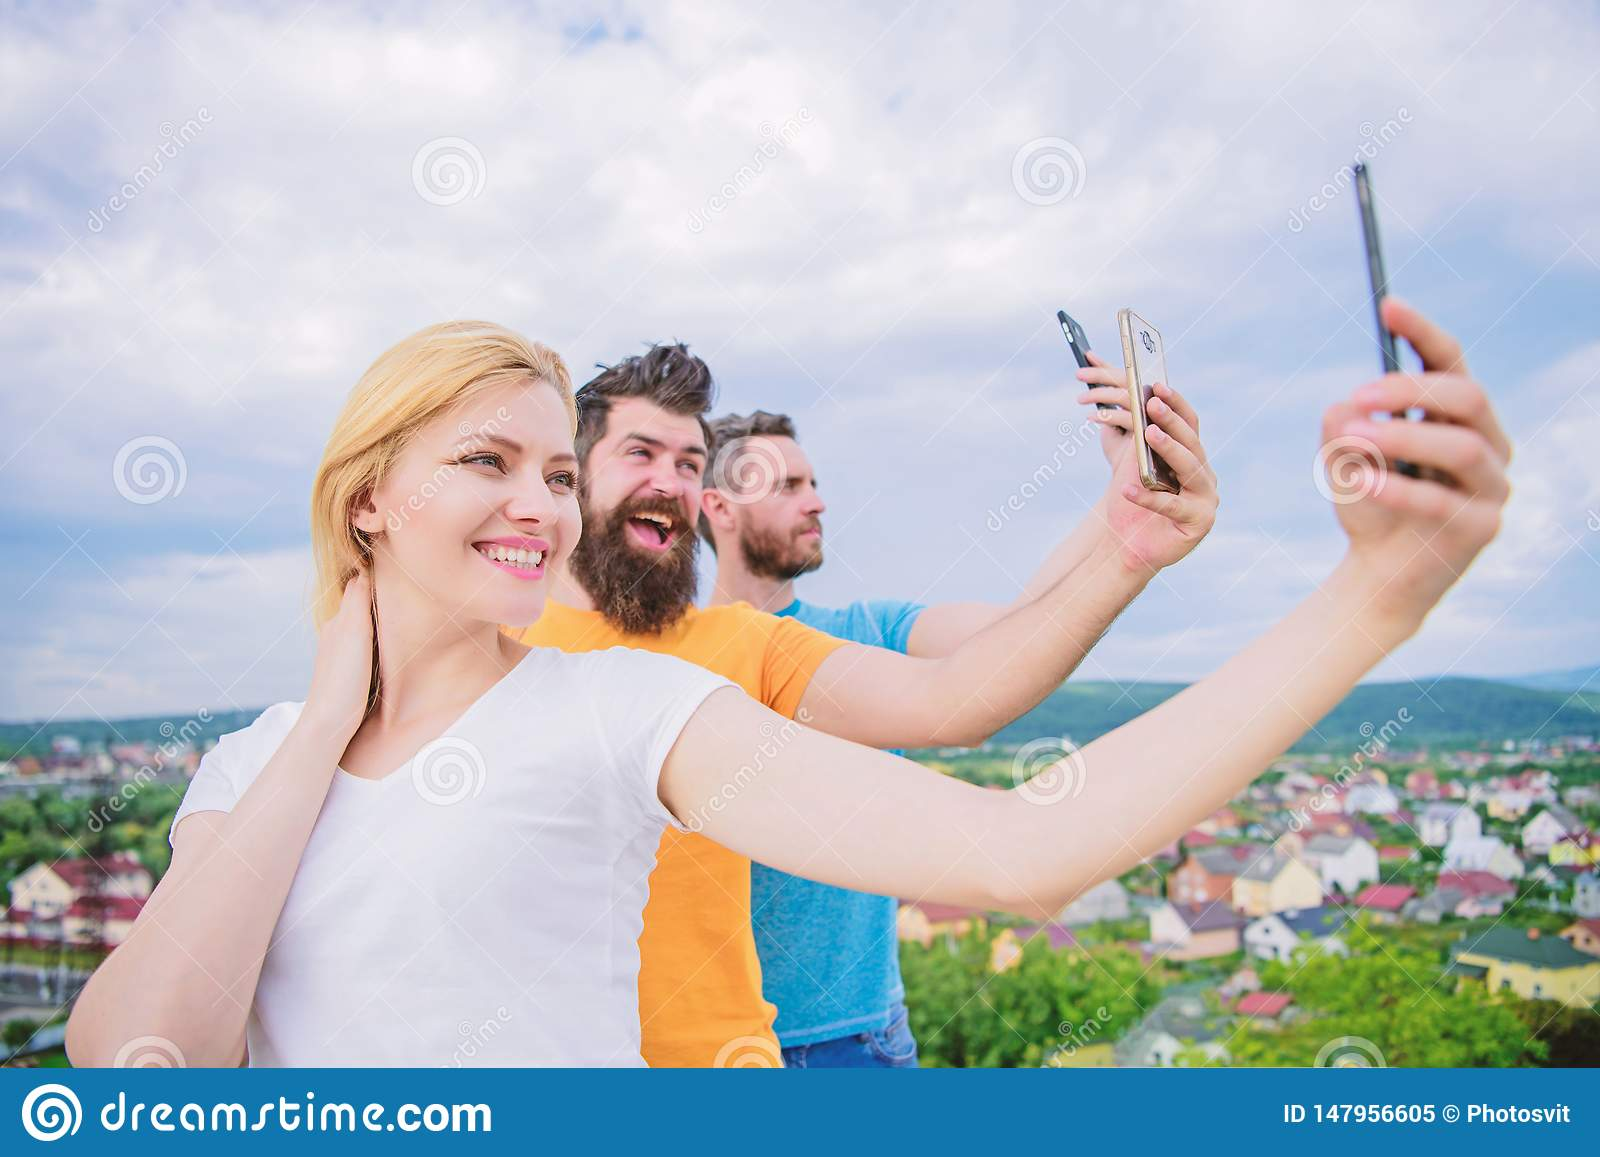 We are all individuals. People enjoy selfie shooting on nature. Best friends taking selfie with camera phone. Sexy girl